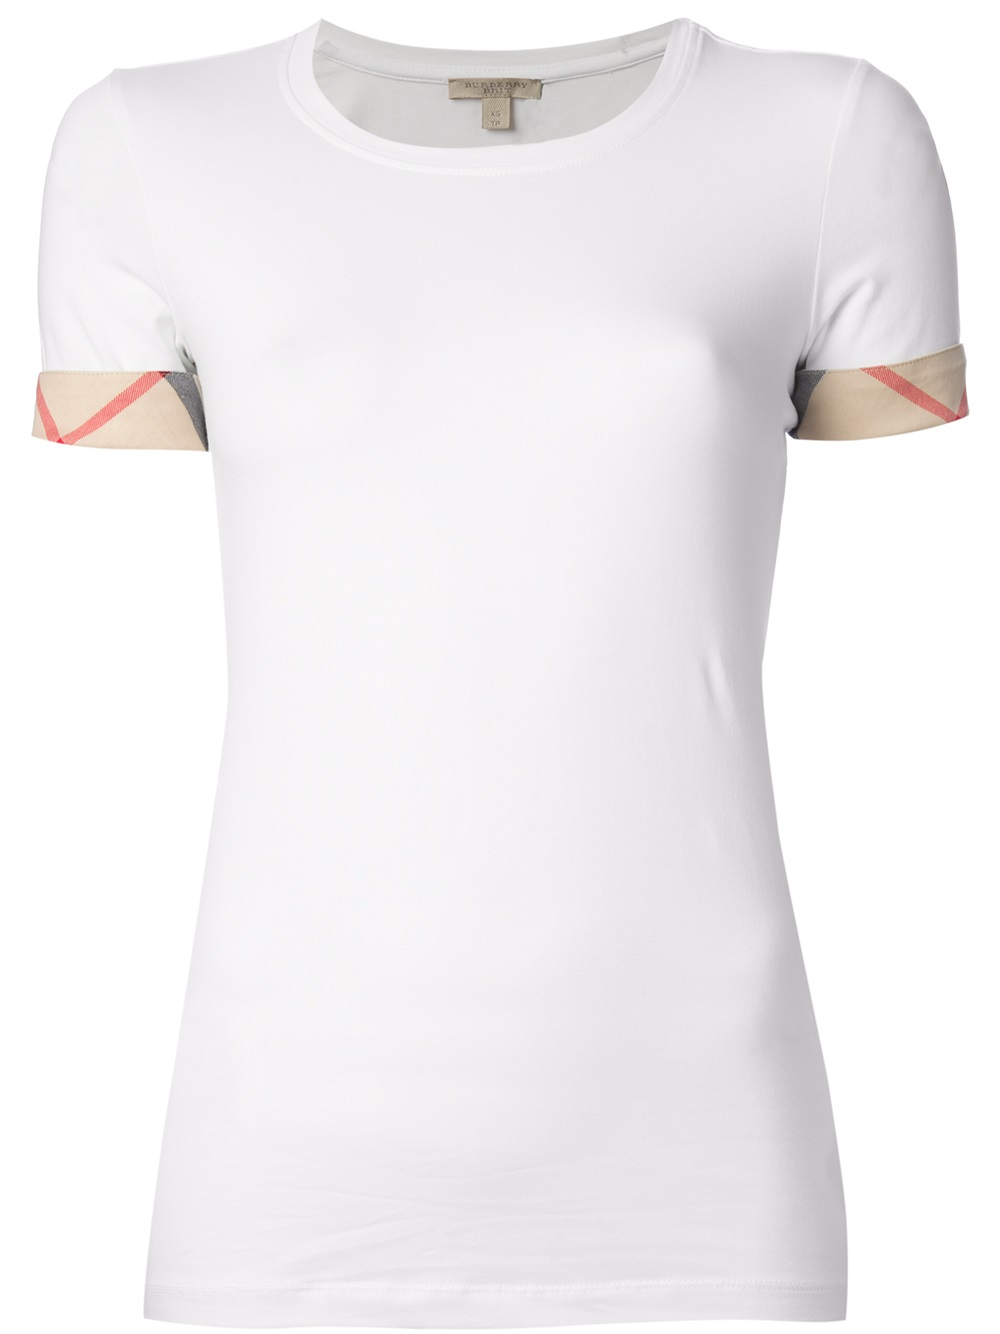 Lyst - Burberry Brit  house Check  Cuffs T-shirt in White 703b52af01